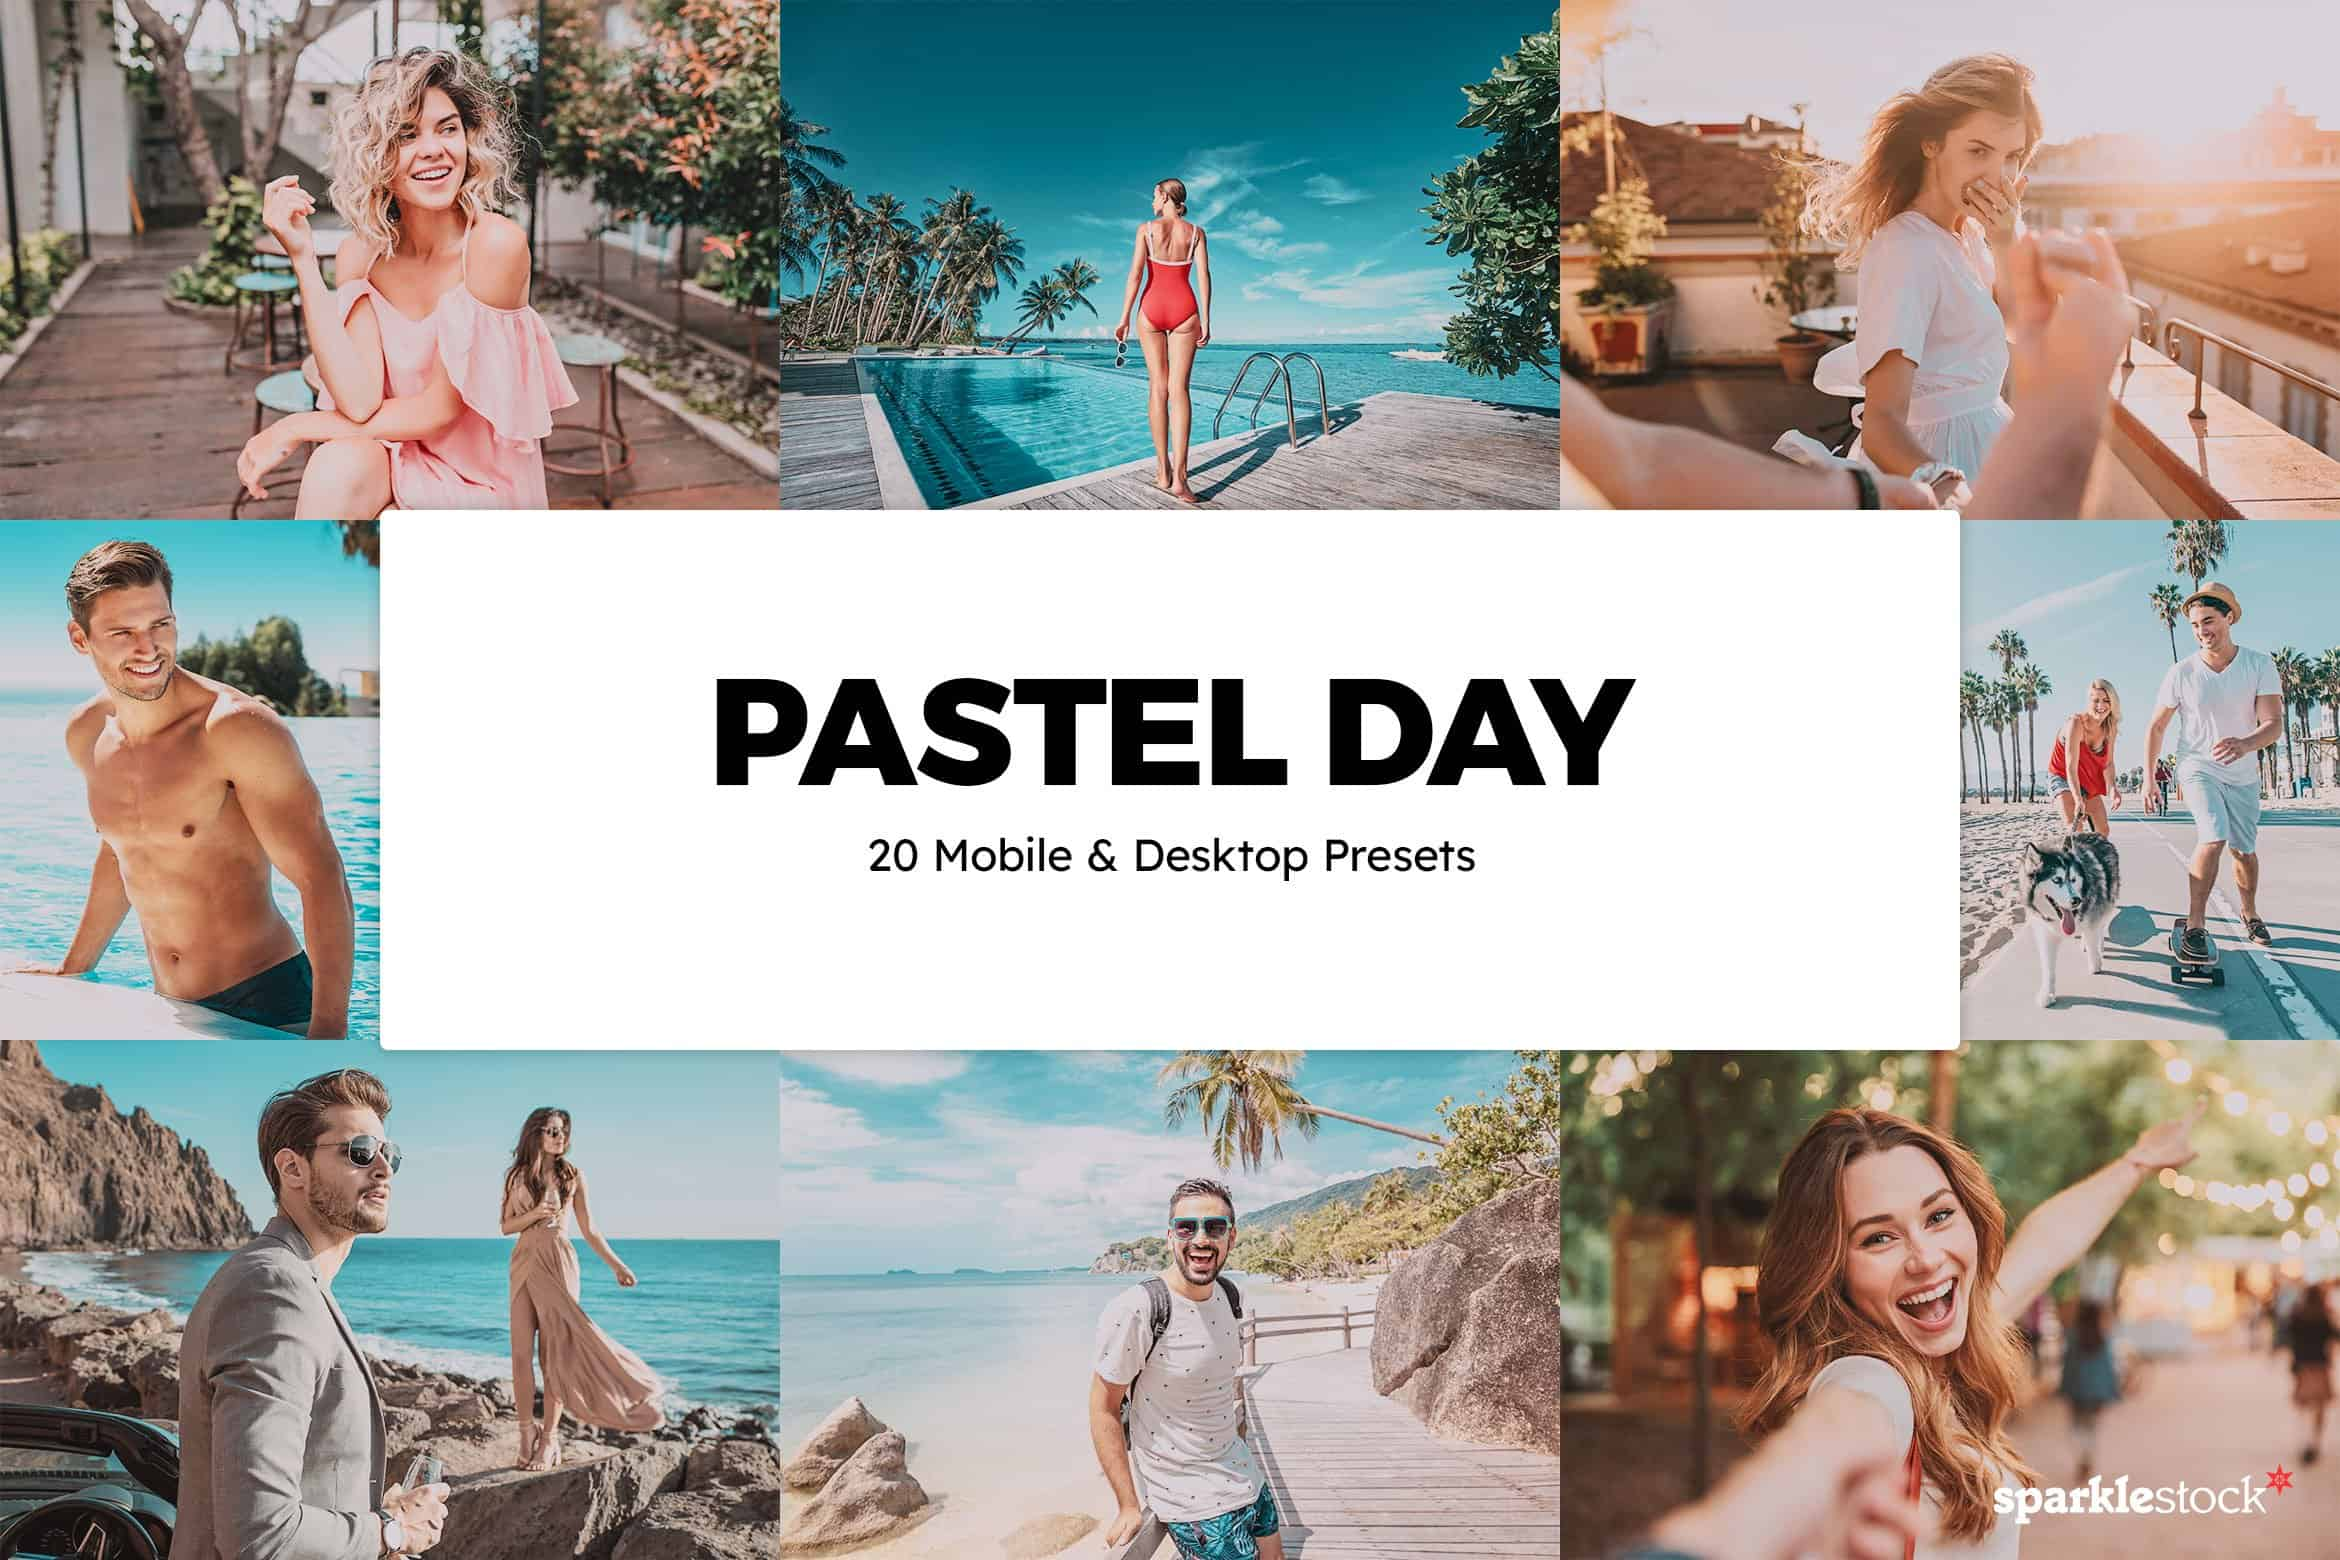 8 Free Pastel Day Lightroom Presets and LUTs